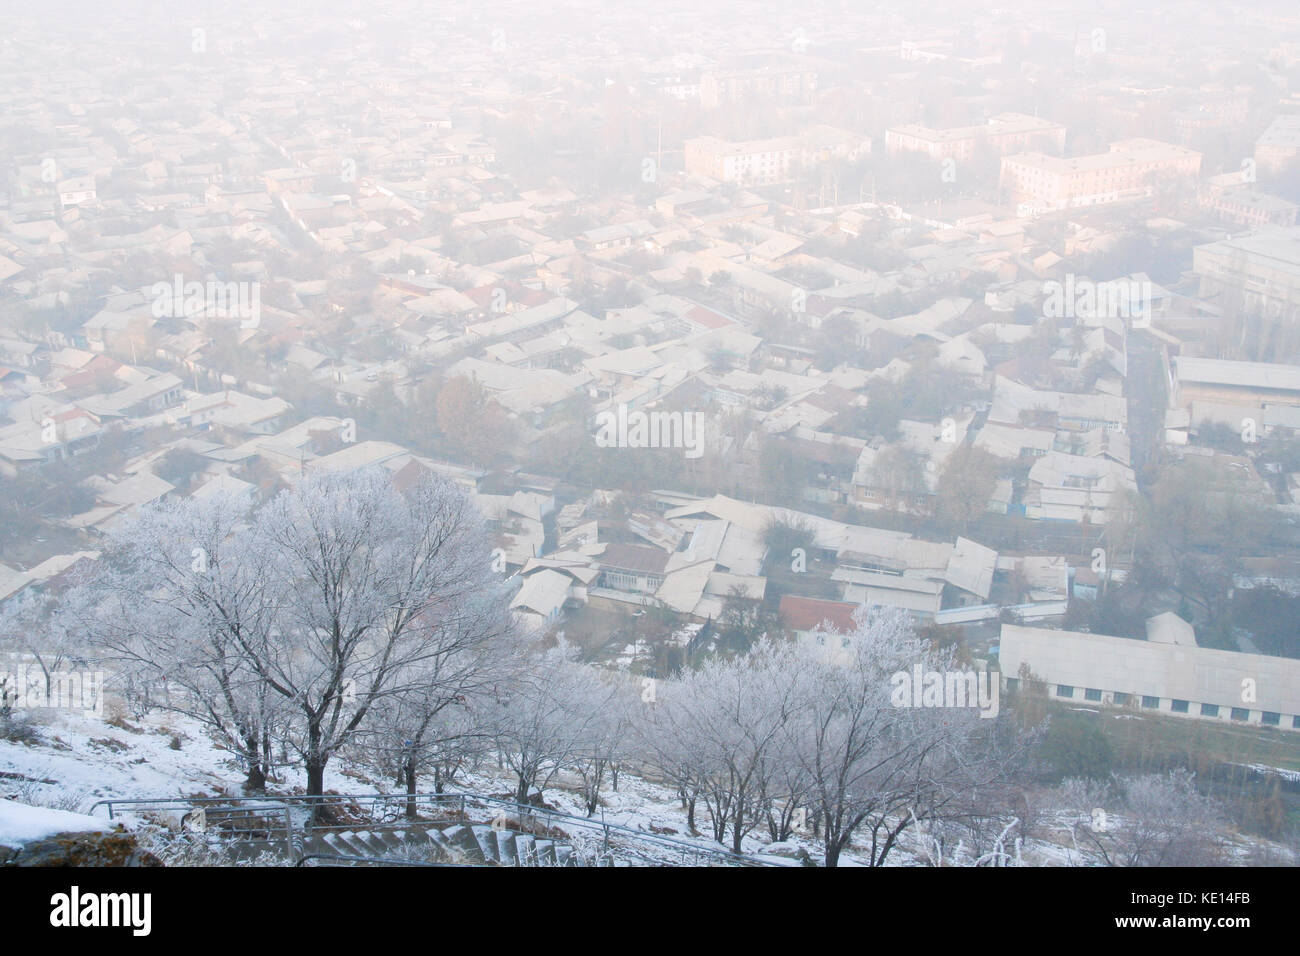 Snow-covered overview of Osh from Sulayman mountain. Osh, Fergana Valley, Kyrgyzstan - Stock Image